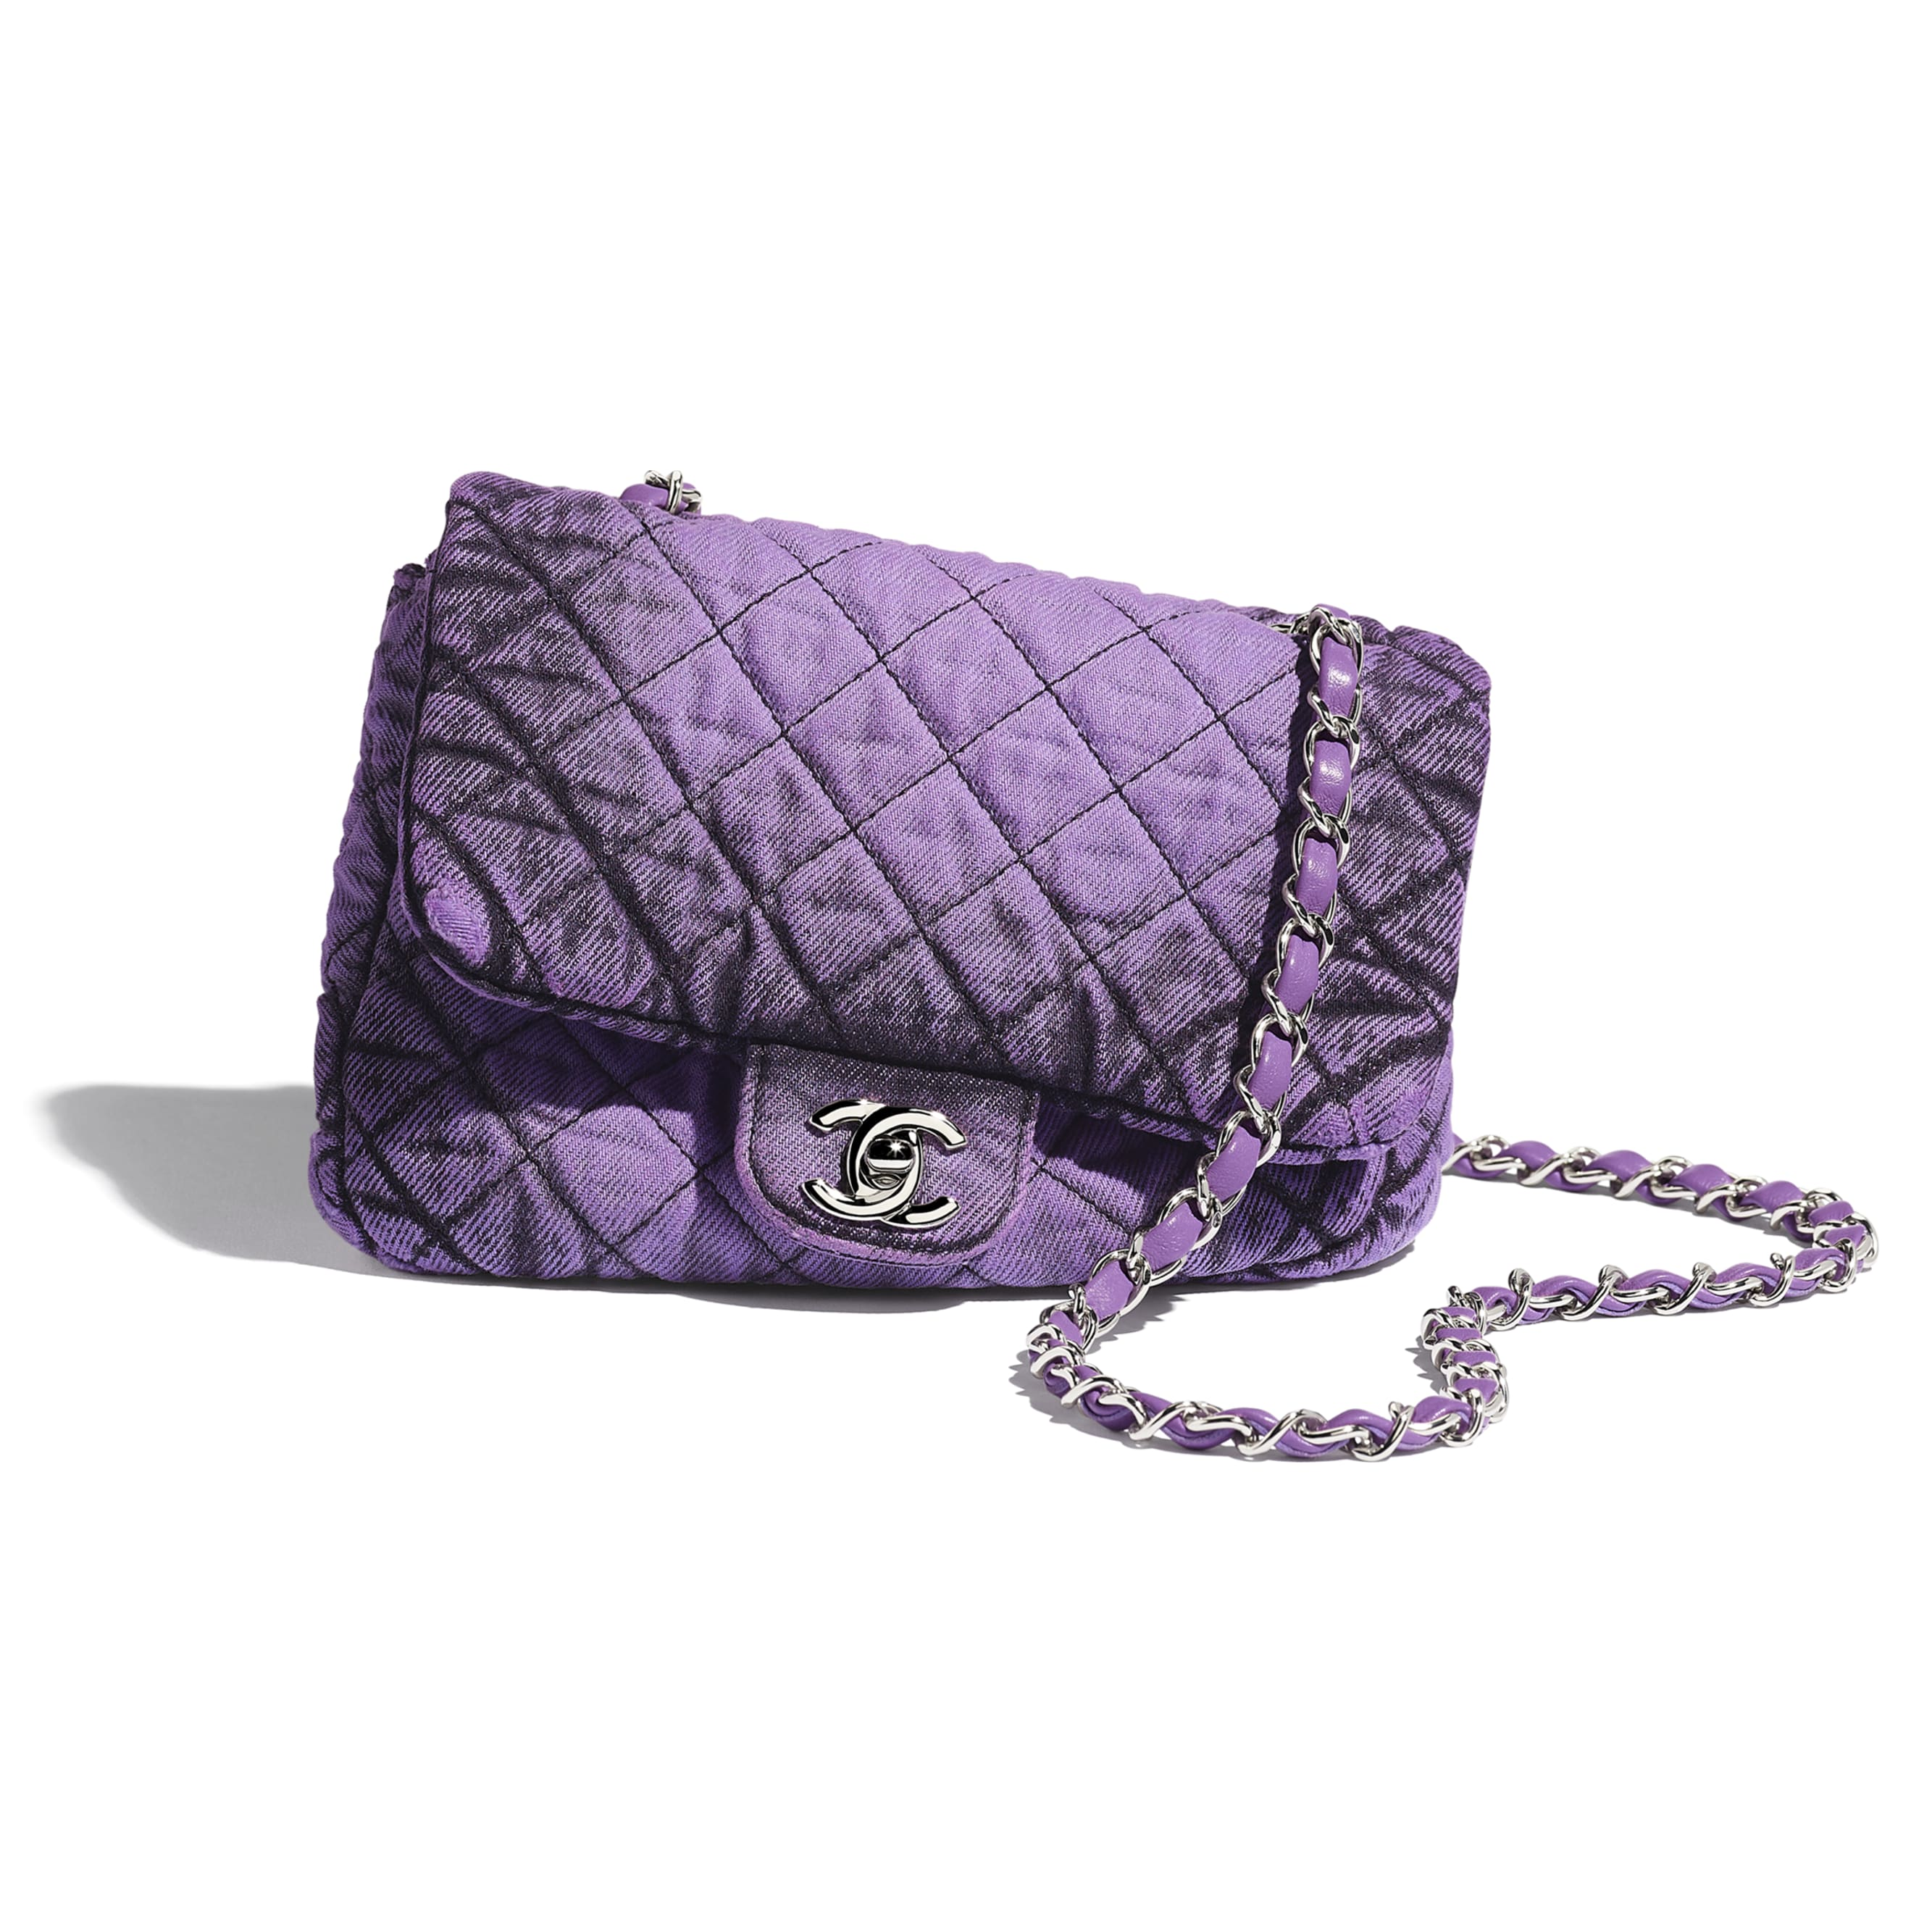 Small Flap Bag - Purple & Black - Denim & Silver-Tone Metal - CHANEL - Extra view - see standard sized version